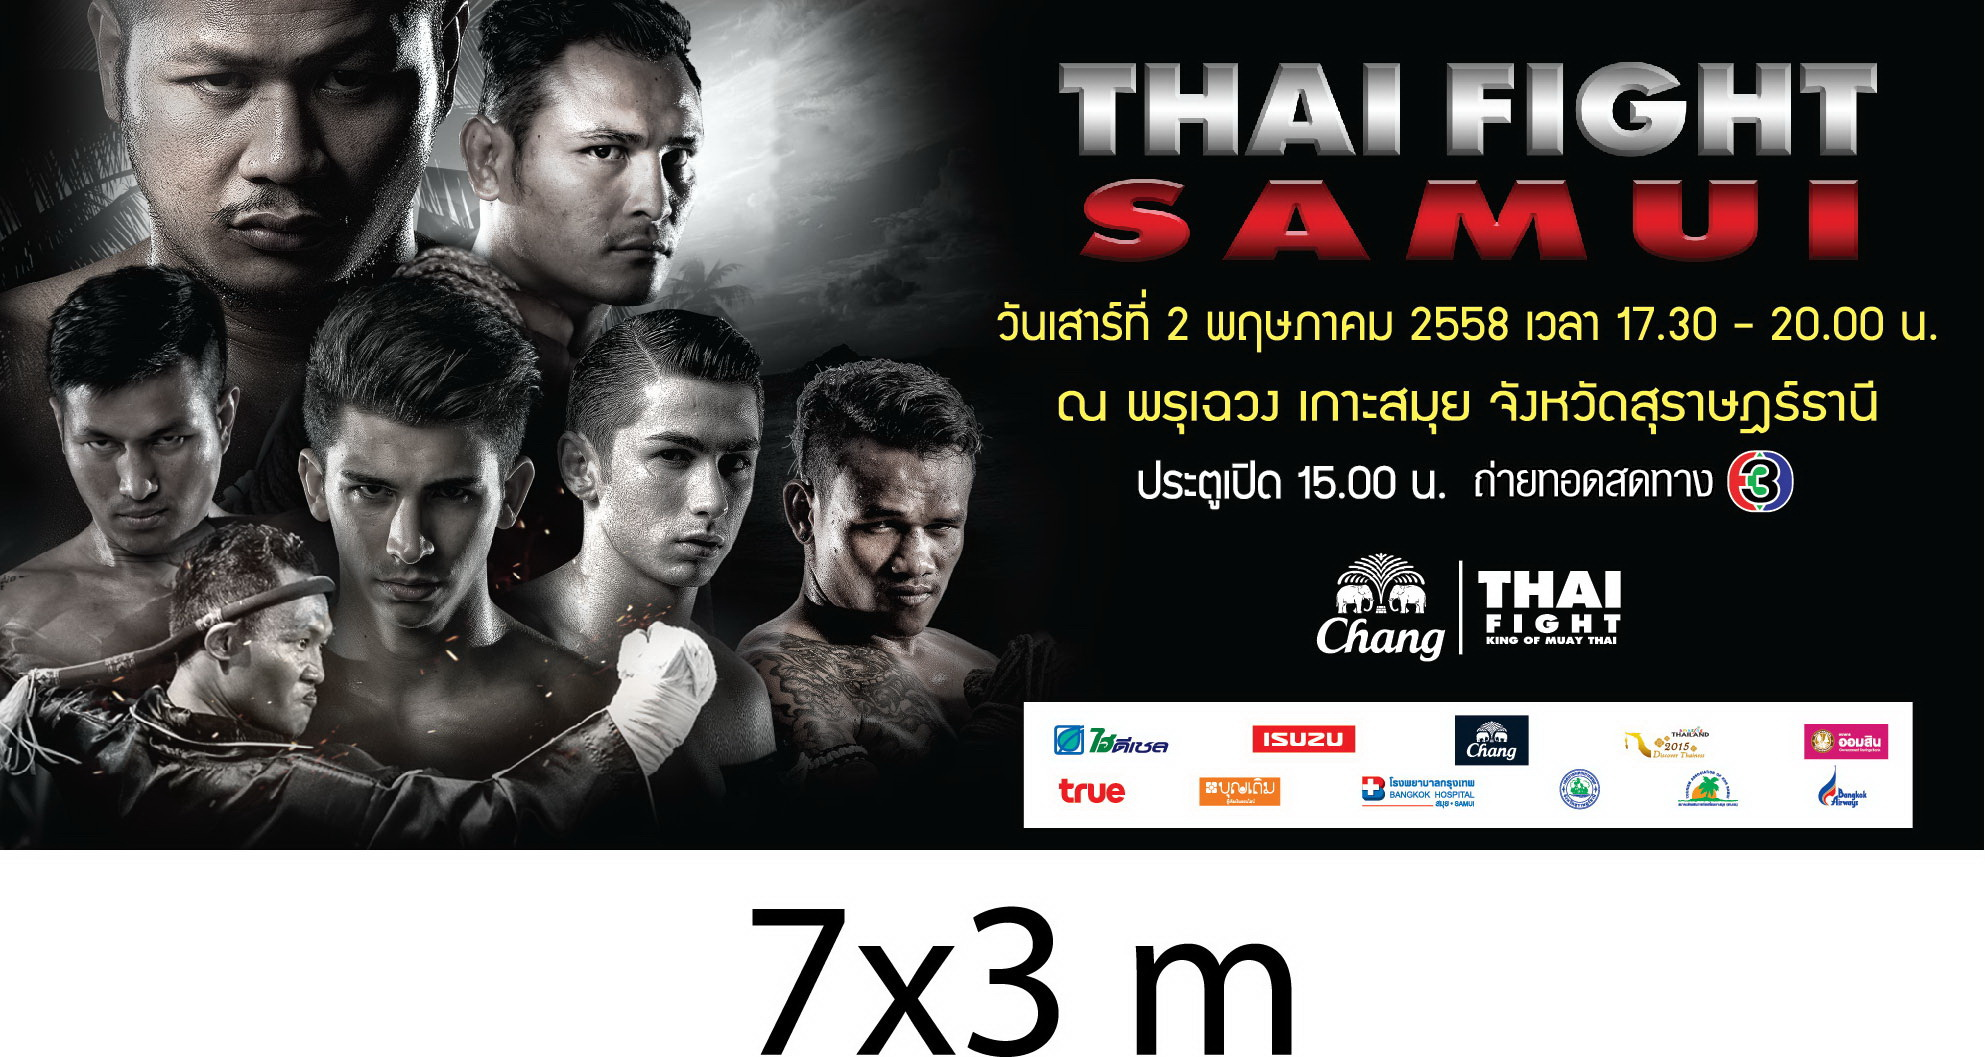 Thai Fight coming to Koh Samui on May 2nd | Samui Times